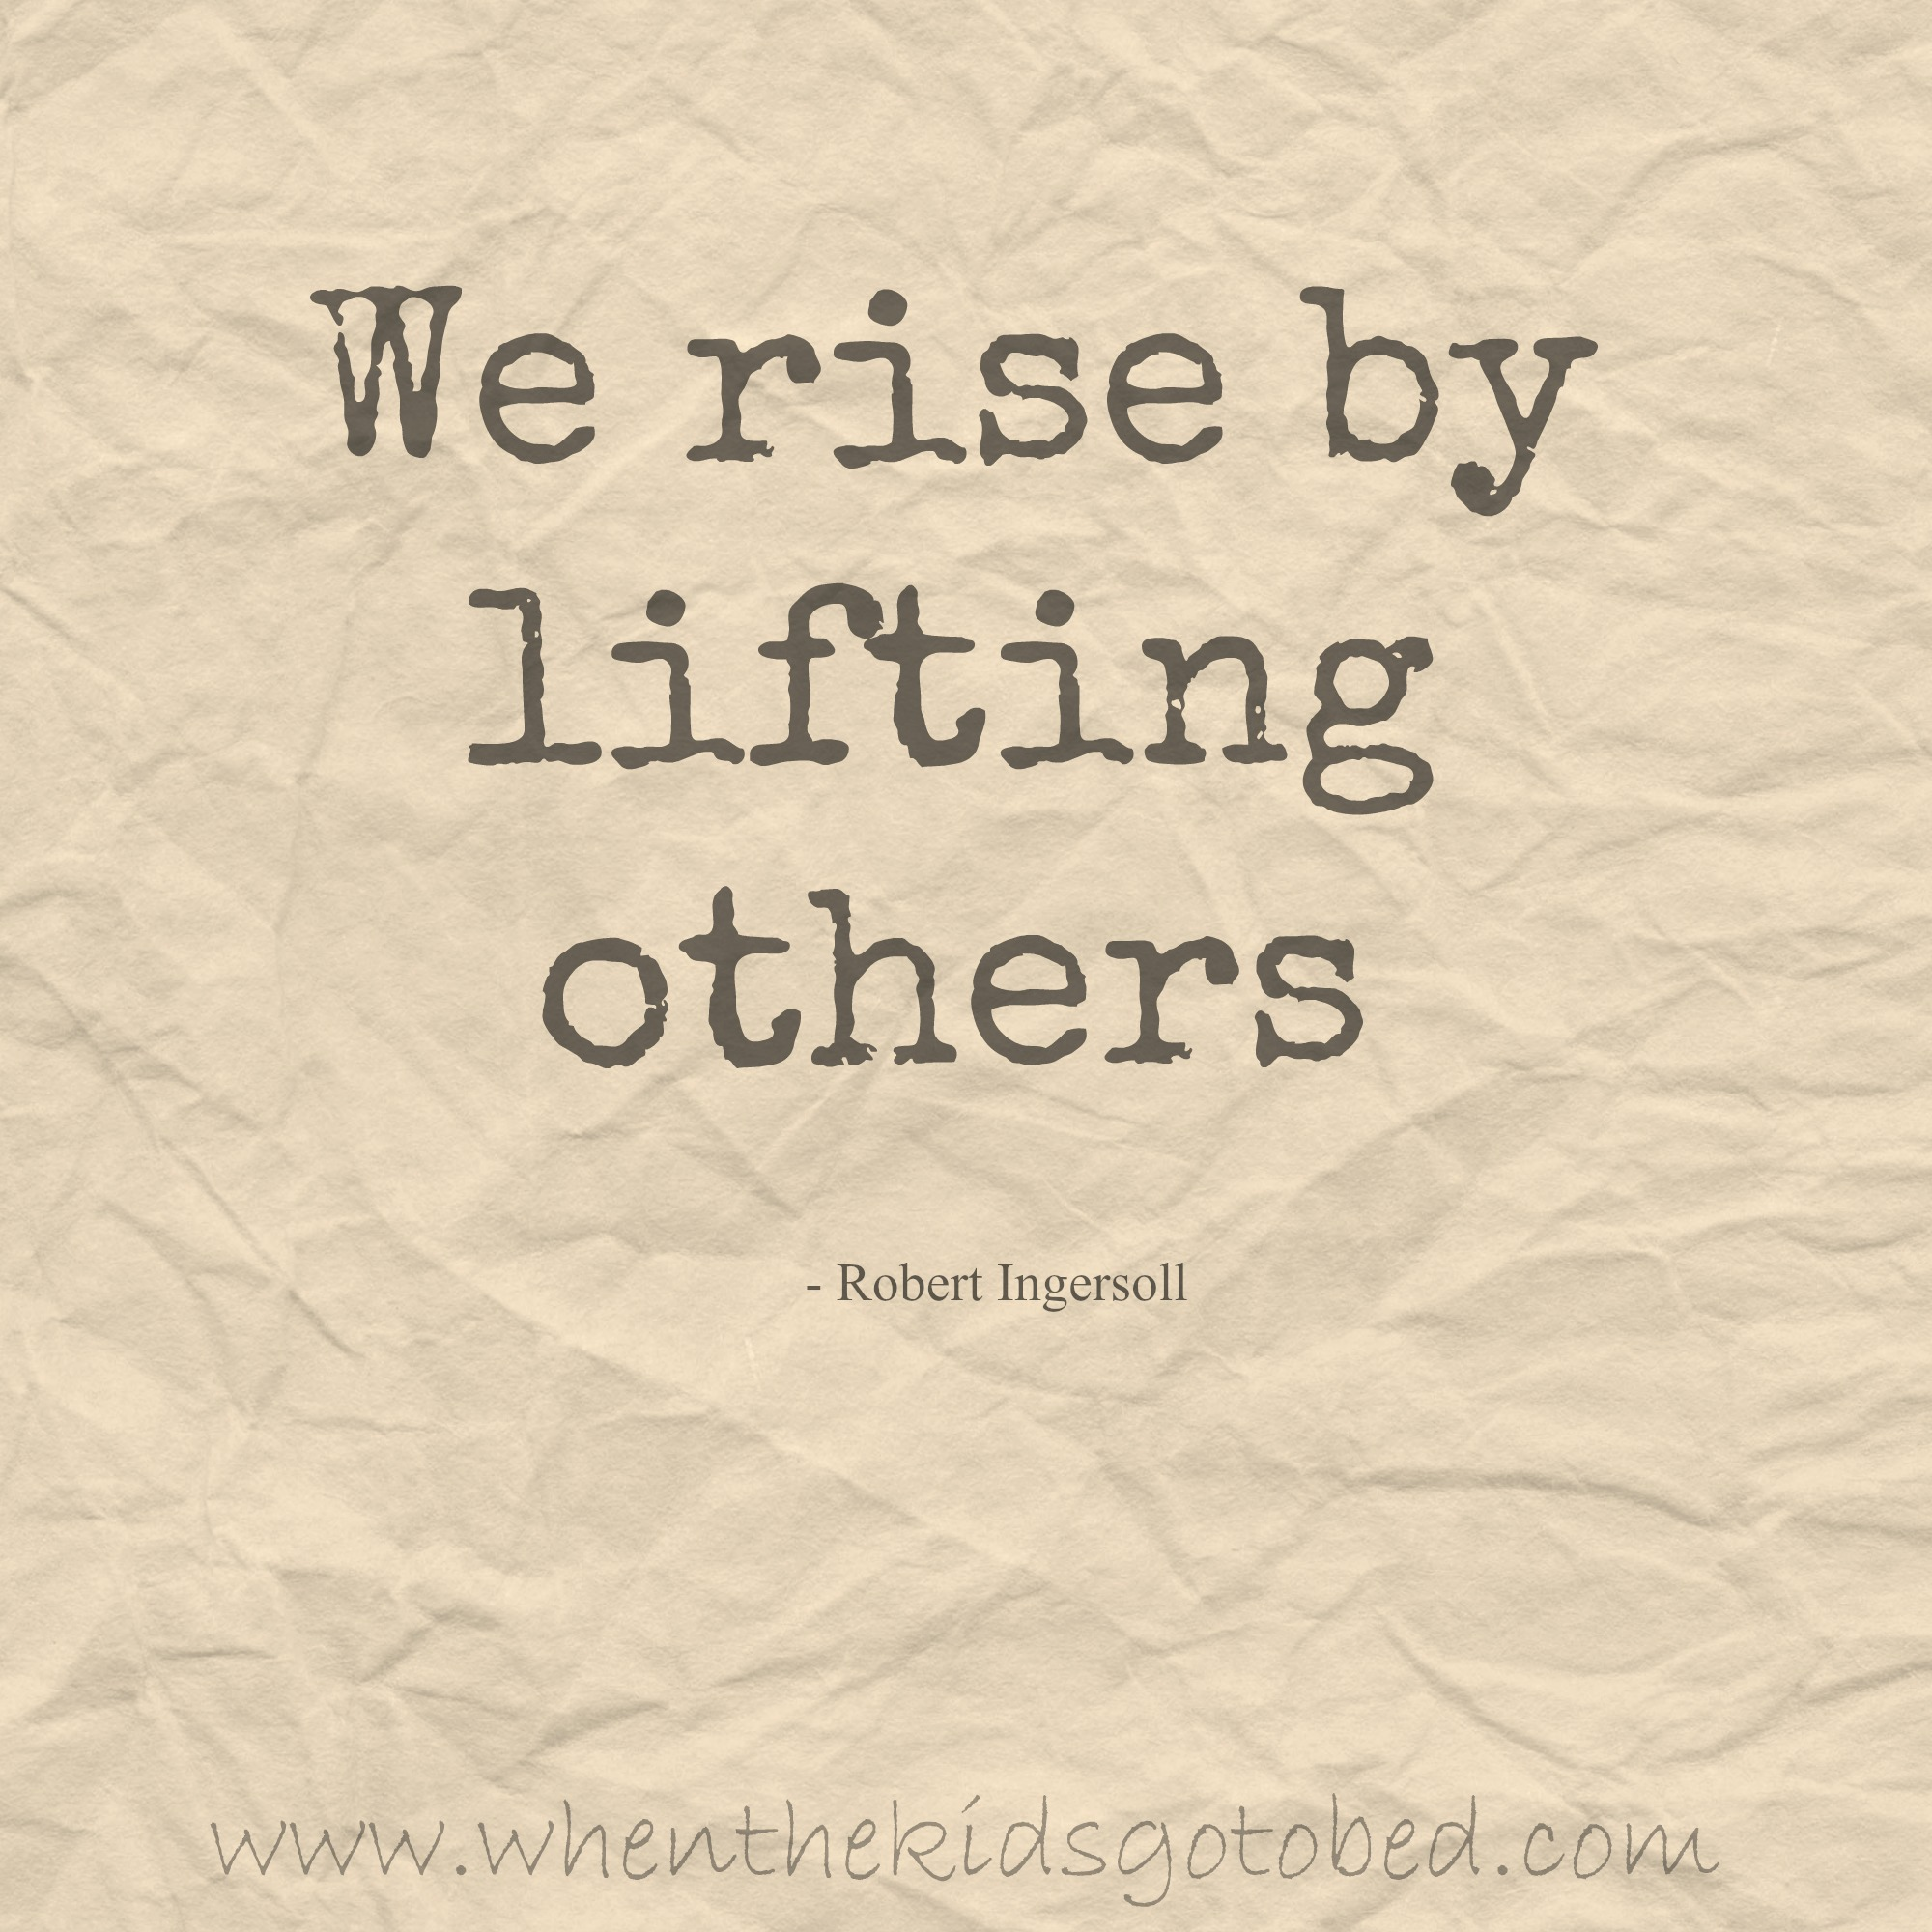 Lifting Quotes Motivation Monday  Lift Someone Up Today  When The Kids Go To Bed